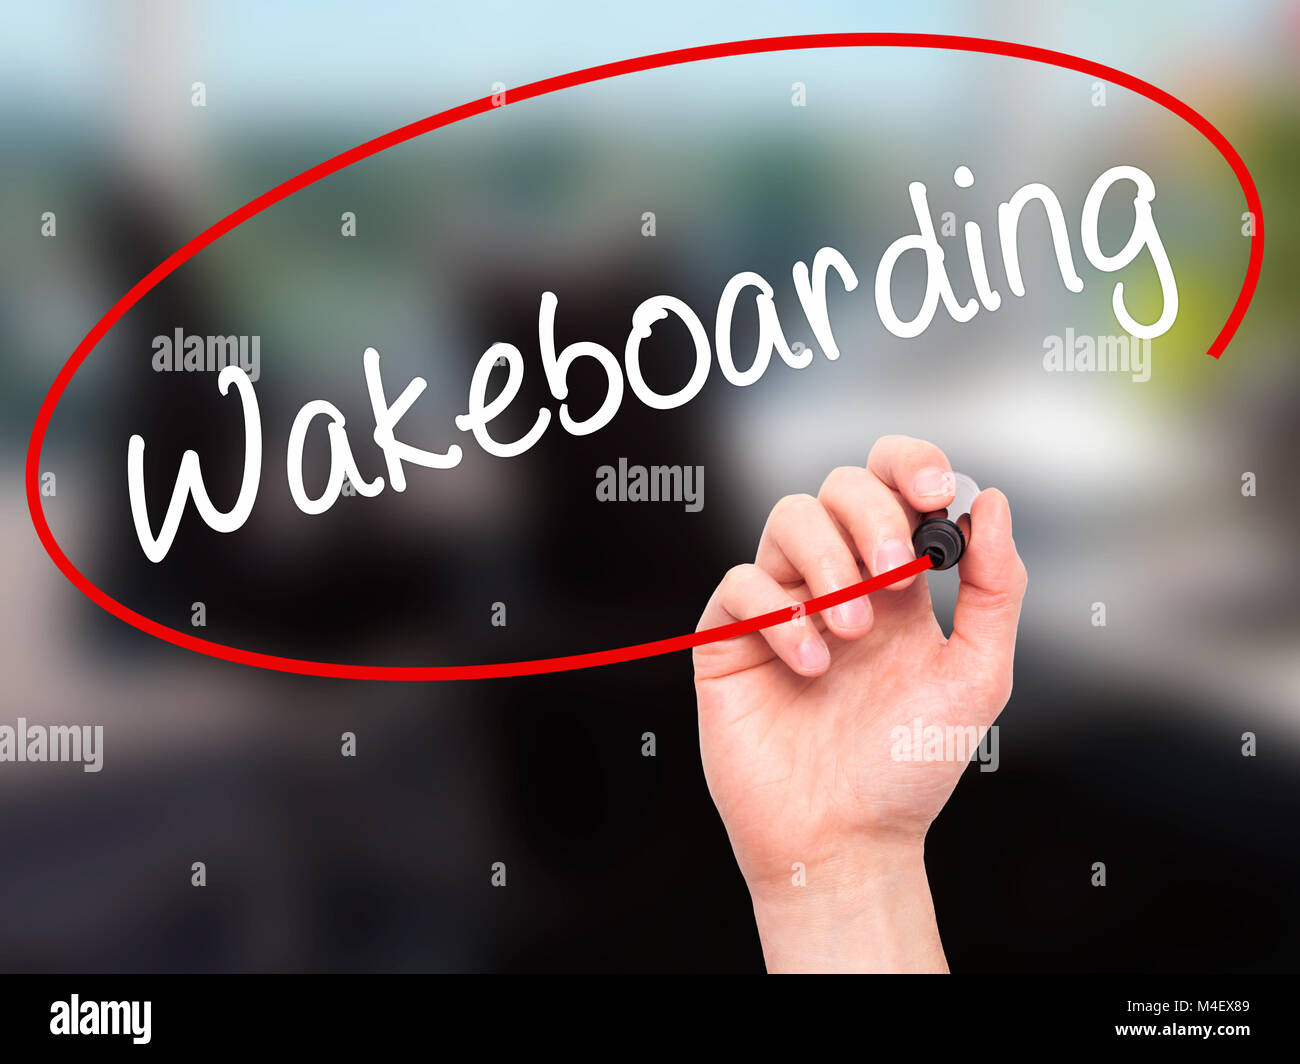 Man Hand writing Wakeboarding with black marker on visual screen. - Stock Image